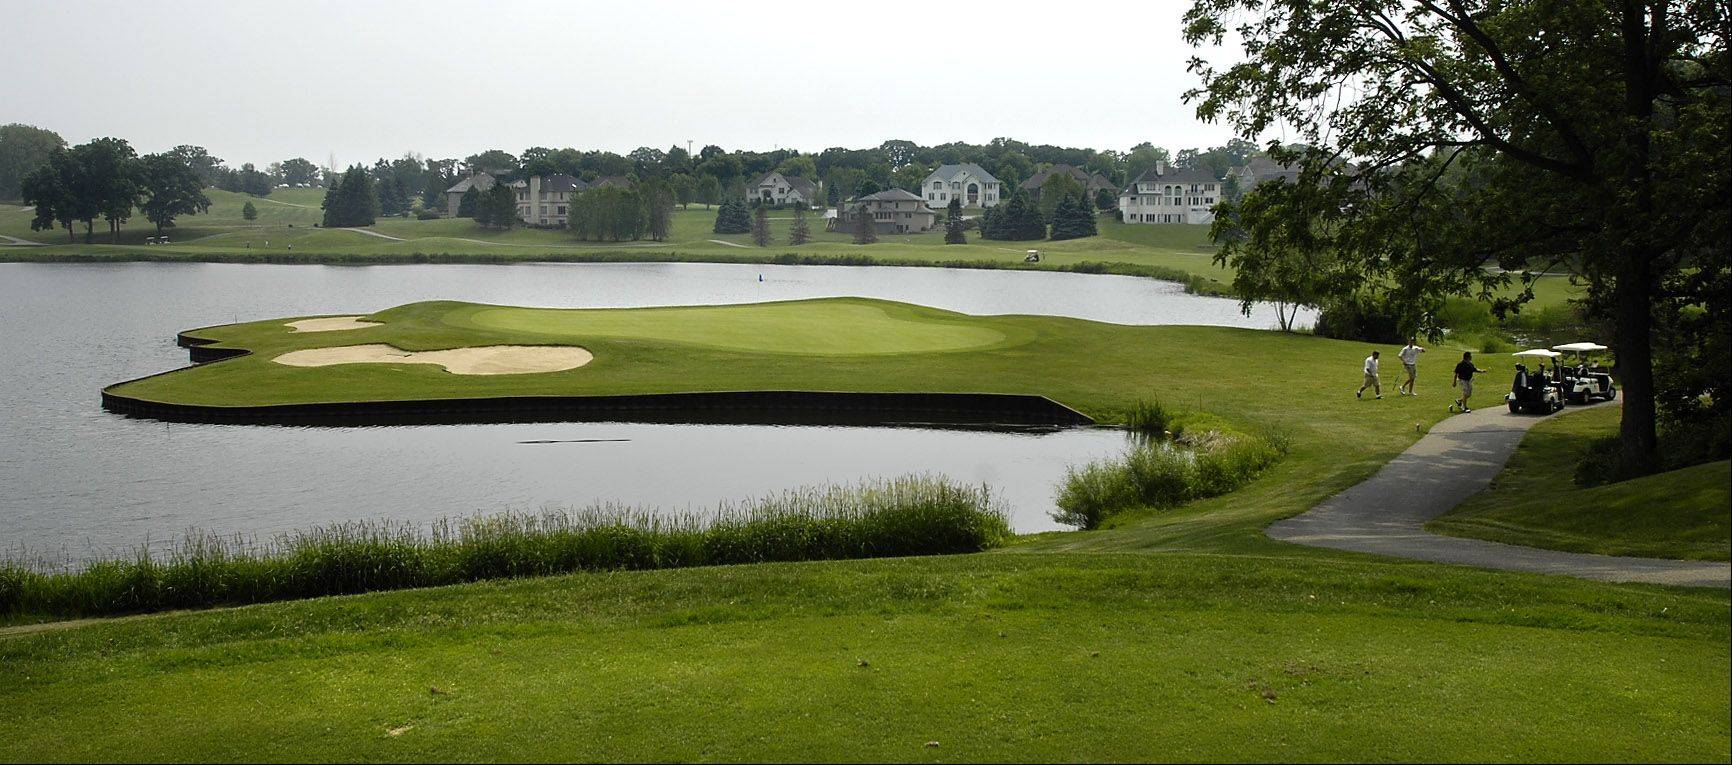 This tricky, short par three to a peninsula green is part of Chalet Hills Golf Club in Cary. The course is for sale, and the Cary Park District officials are considering buying it.